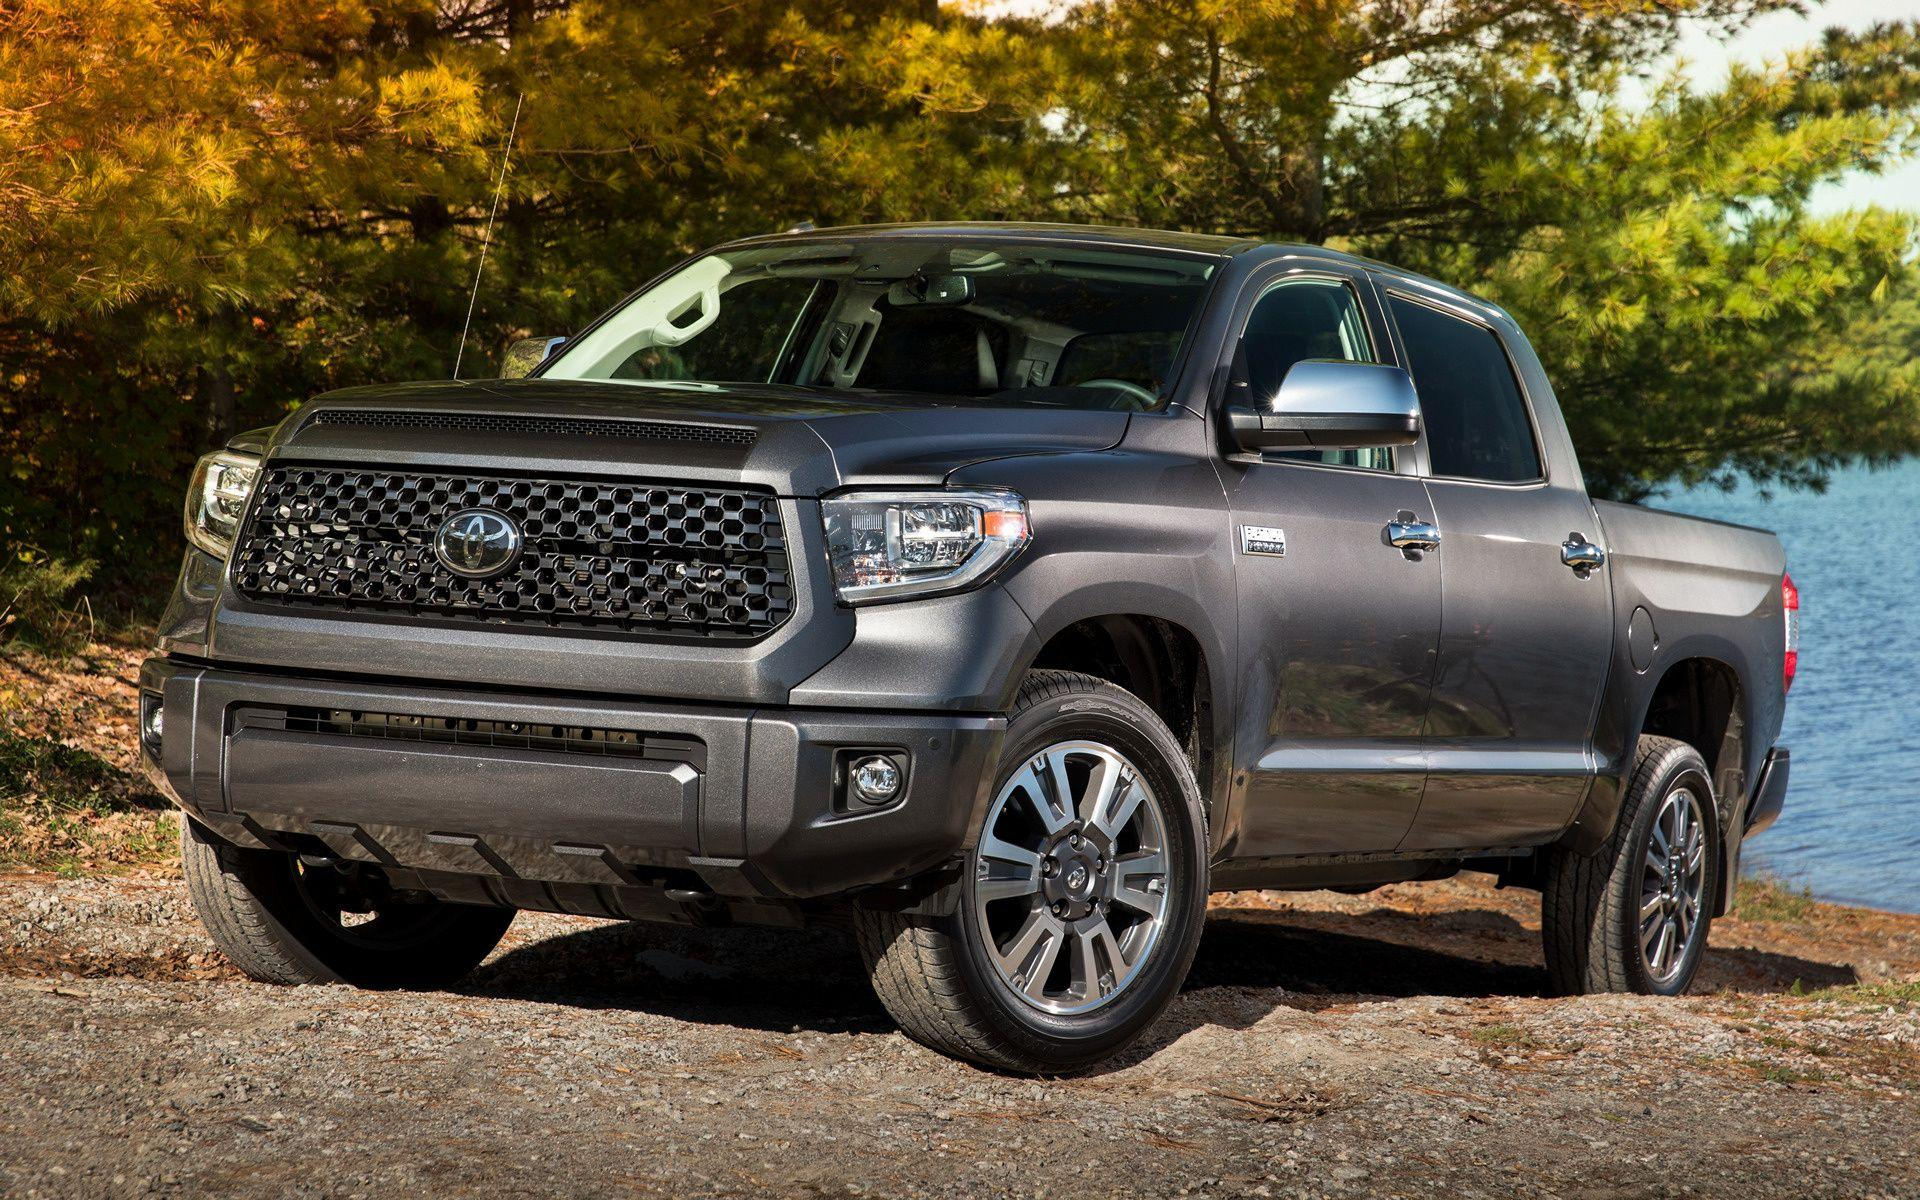 Toyota Tundra Platinum CrewMax (2018) Wallpapers and HD Images - Car ...